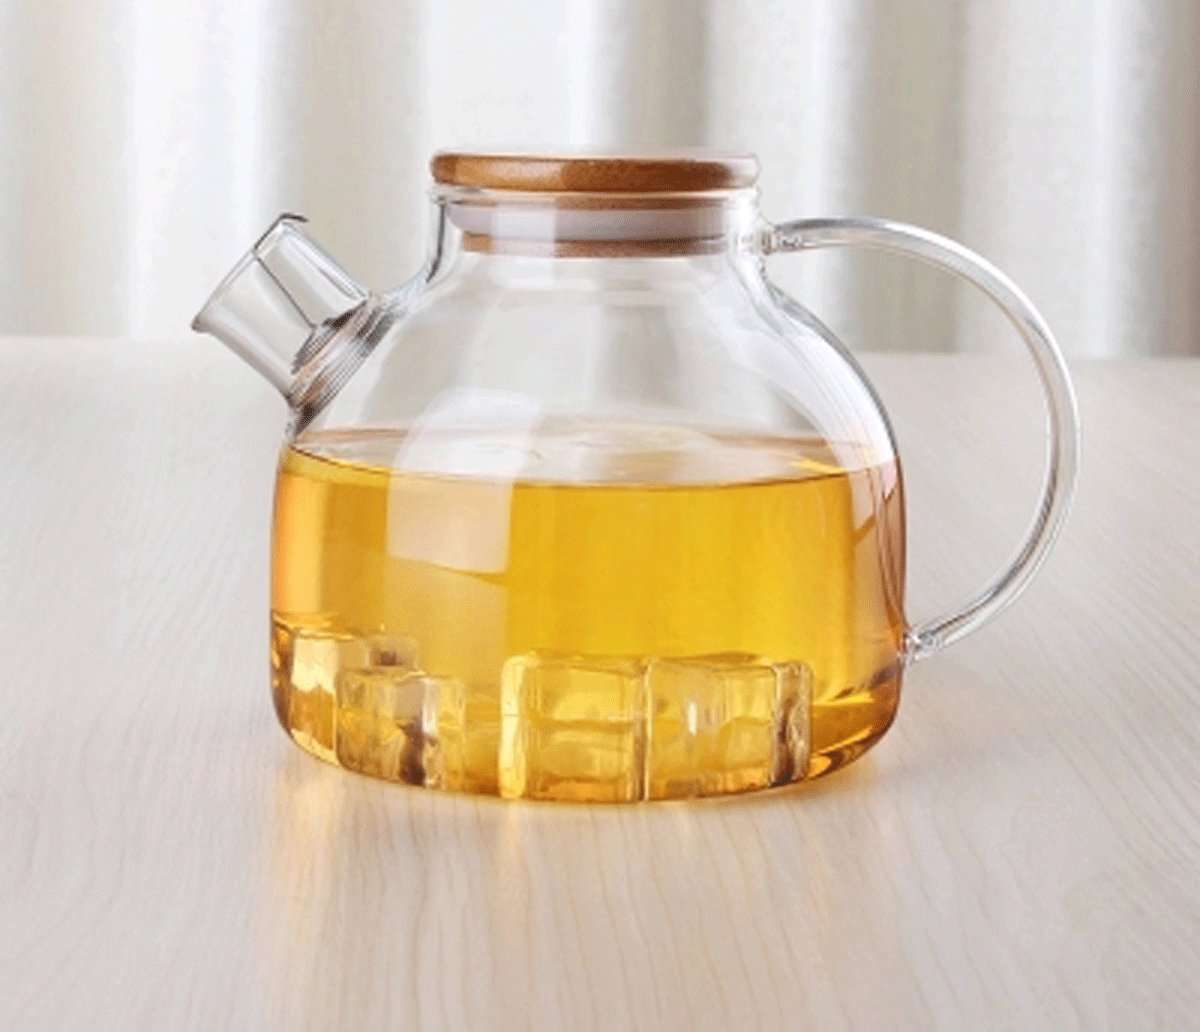 Popowbe Hermetic Seal Glass Pitcher With Lid and Spout Great for Homemade Juice & Iced Tea or for Glass Milk Bottles (1L with Wooden Lid)